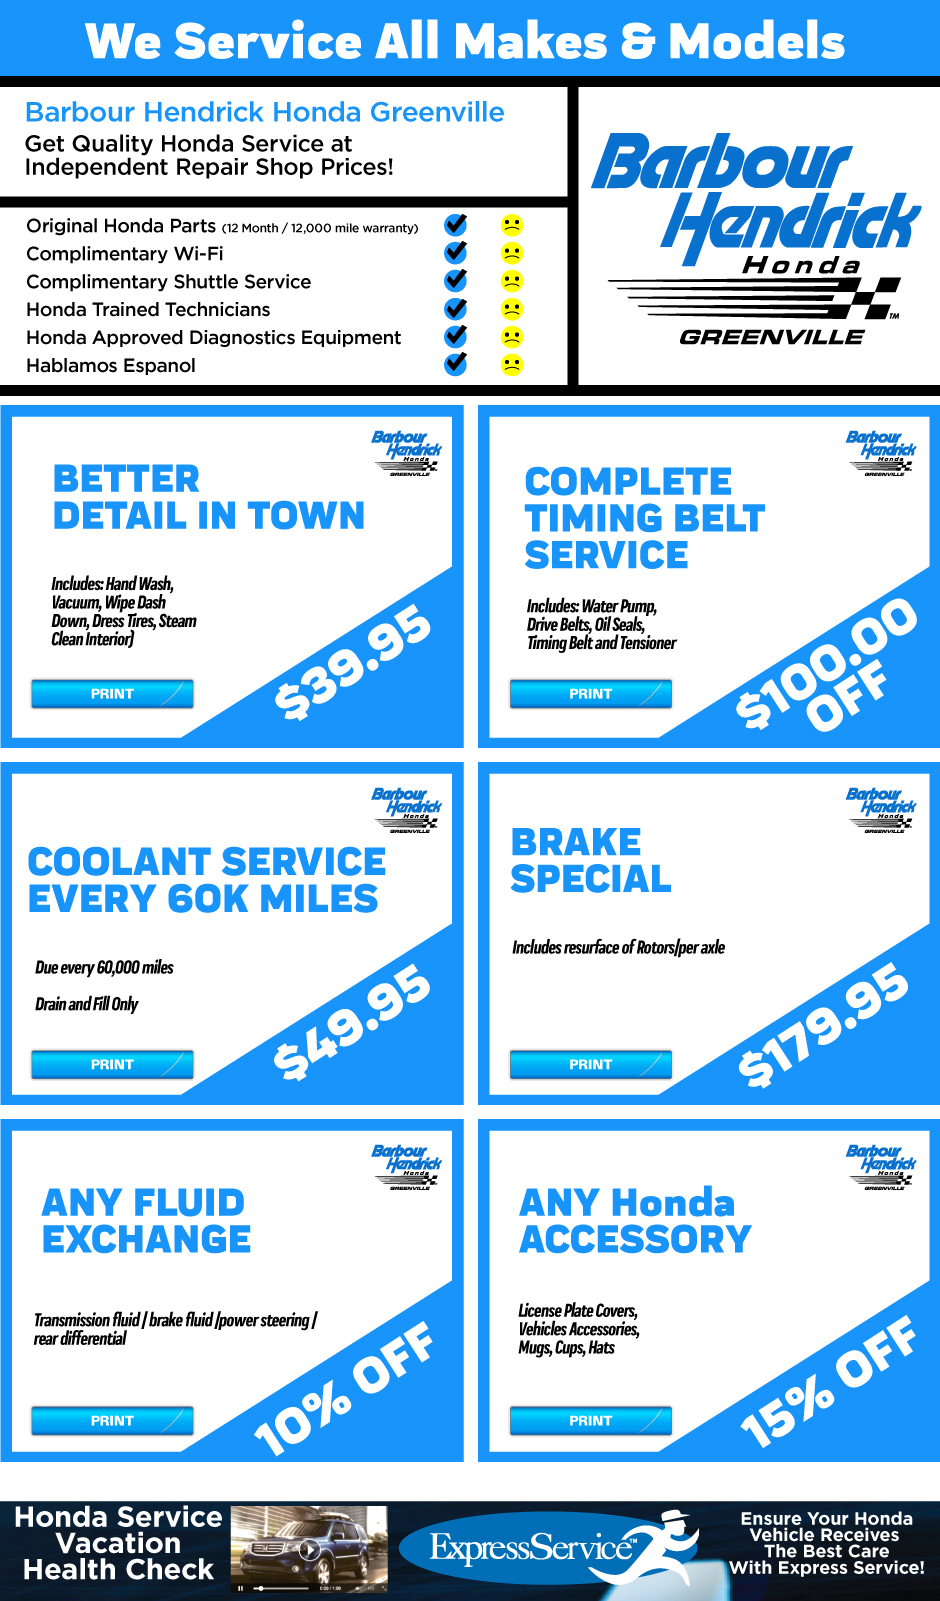 photo regarding Honda Oil Change Printable Coupon identified as Honda Support Bargains inside of Greenville NC